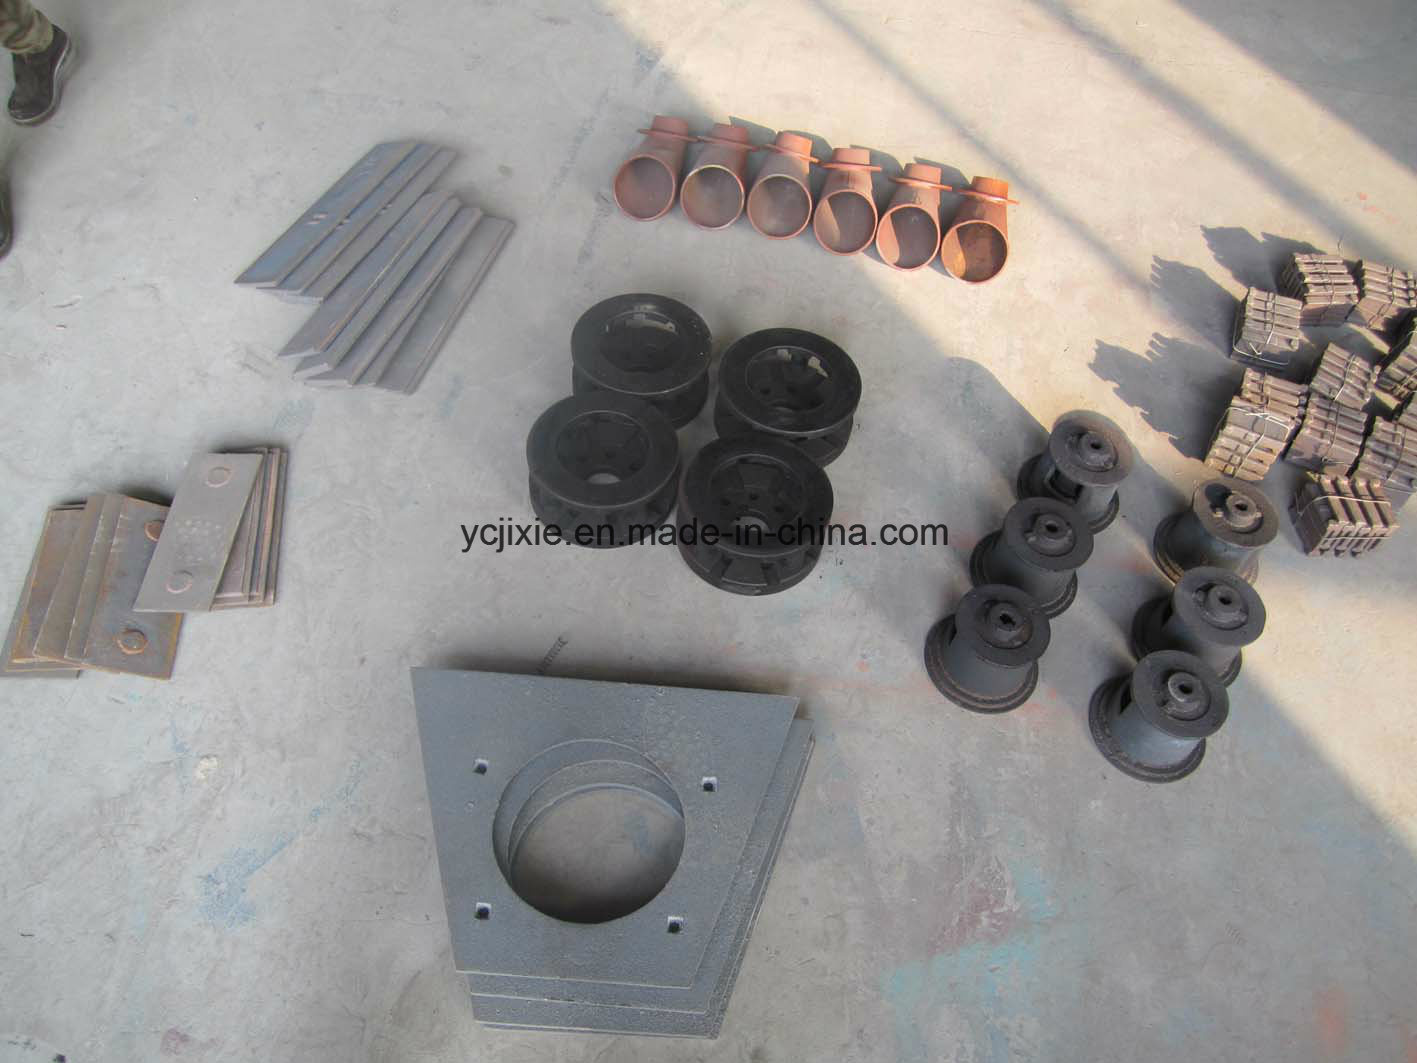 Impeller Unit / Blasting Wheel Turbines/ Shot Blaster/Shot Peening / Wheel Abrator